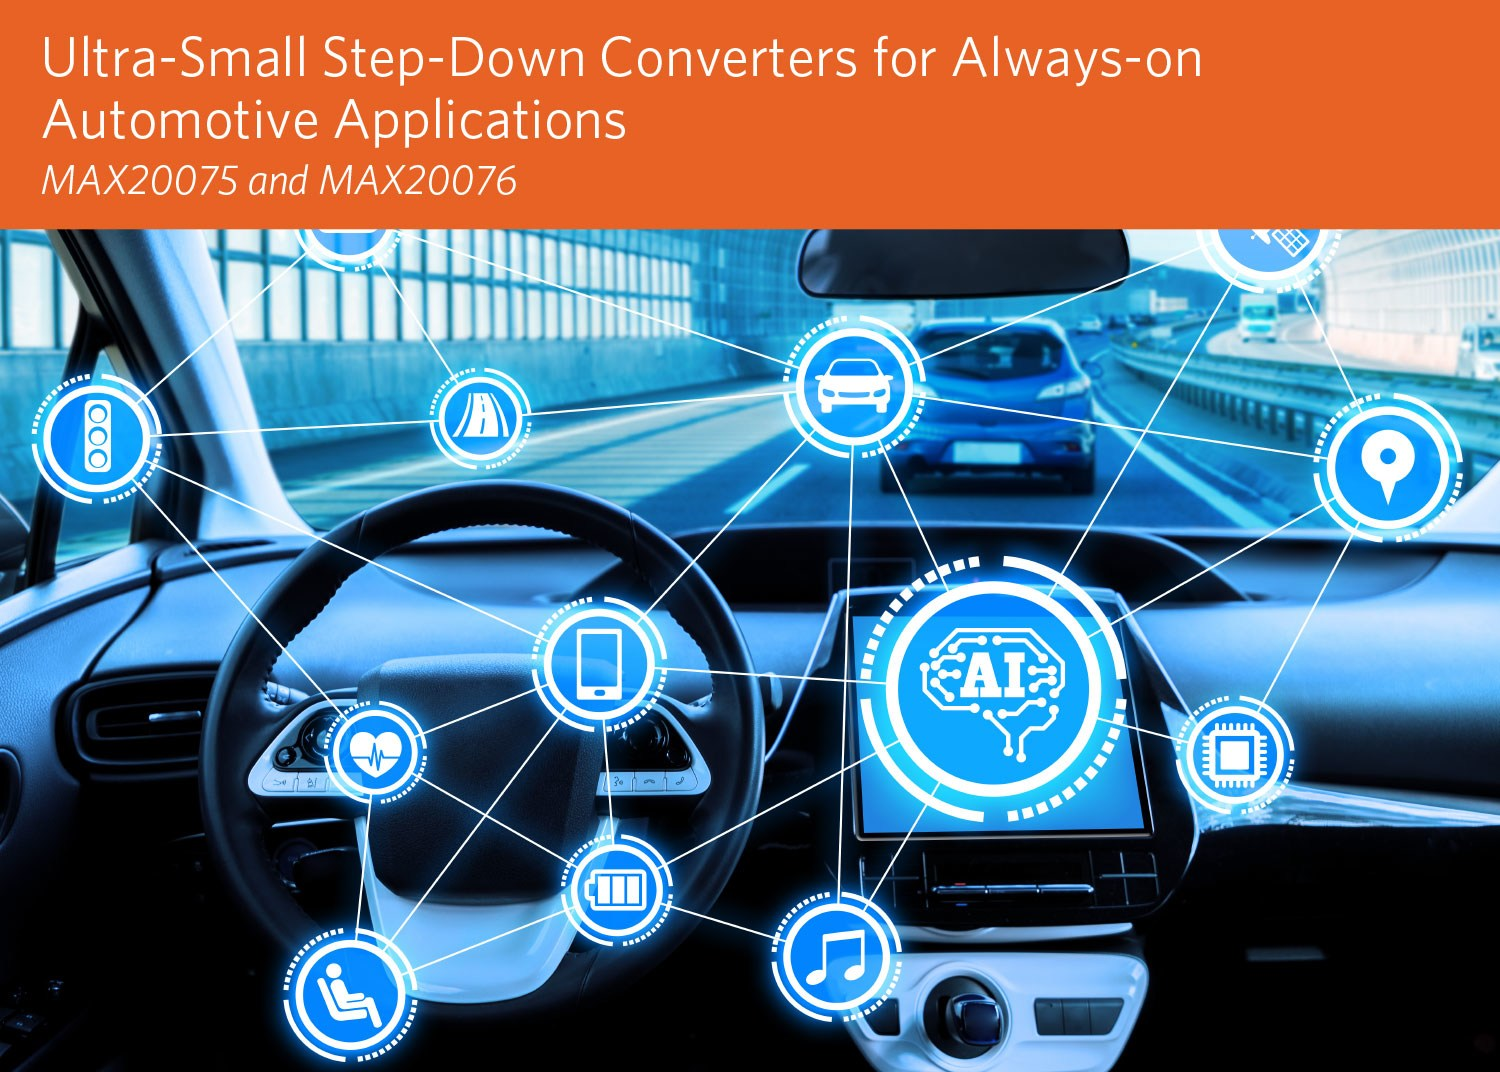 Ultra-Small Step-Down Converters Deliver the Industry's Lowest Quiescent Current and Highest Peak Efficiency